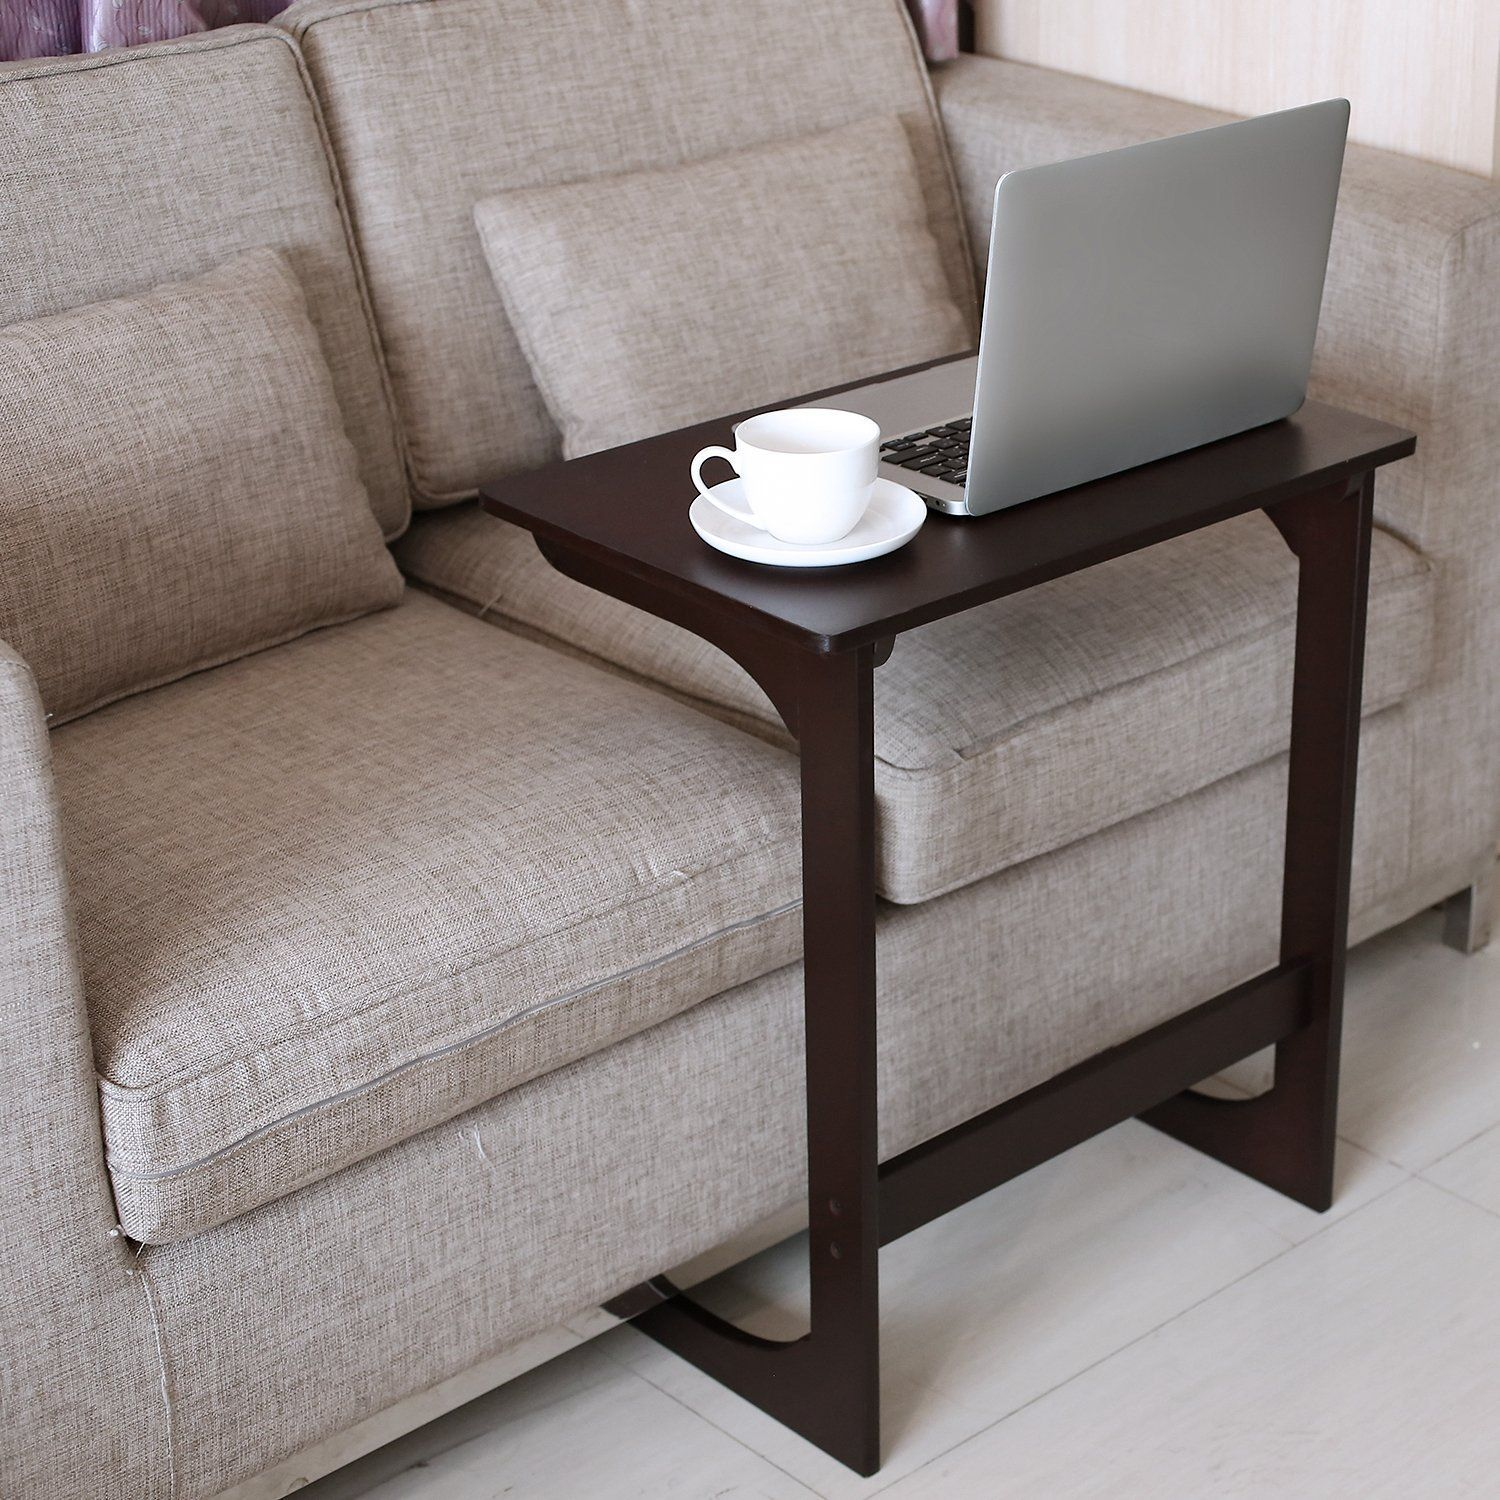 Use it bedside, on a couch, or as a coffee table. This under $40 multi-purpose find will be the next best addition to your mu